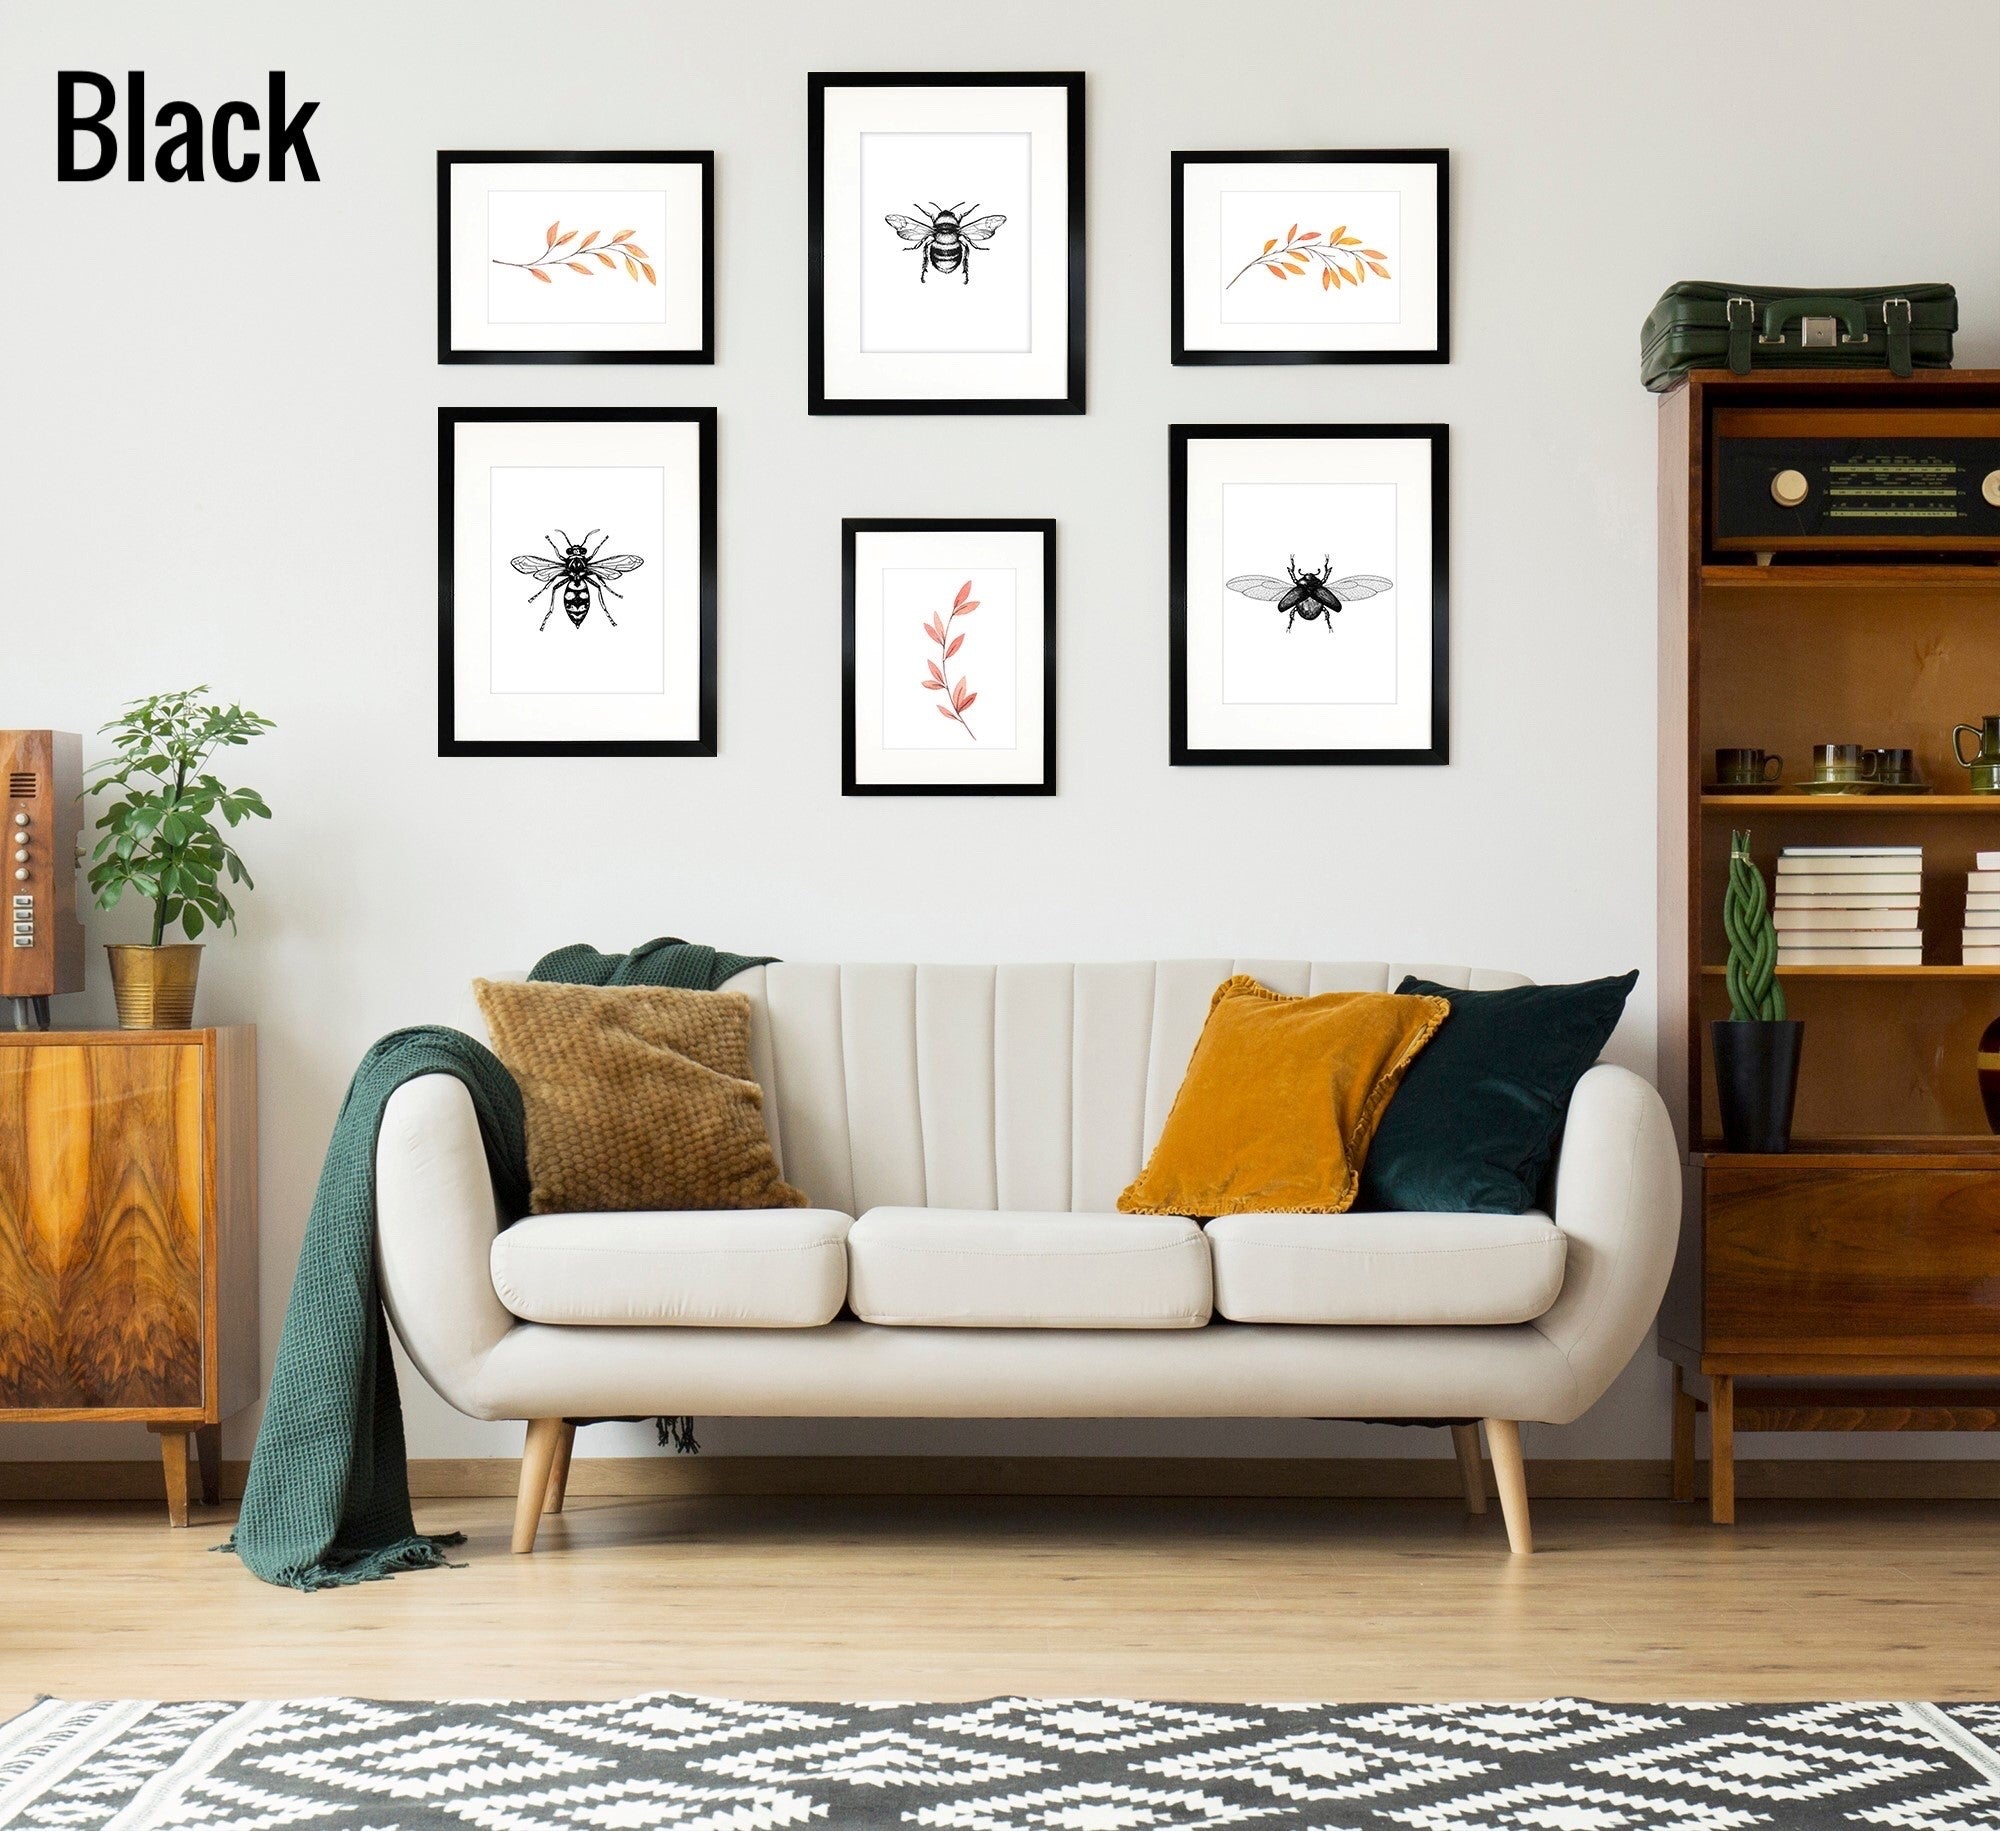 Oxford Black Gallery Wall Set of 6 Frames - 3 x A3 for A4 and 3 x A4 for A5 Frames